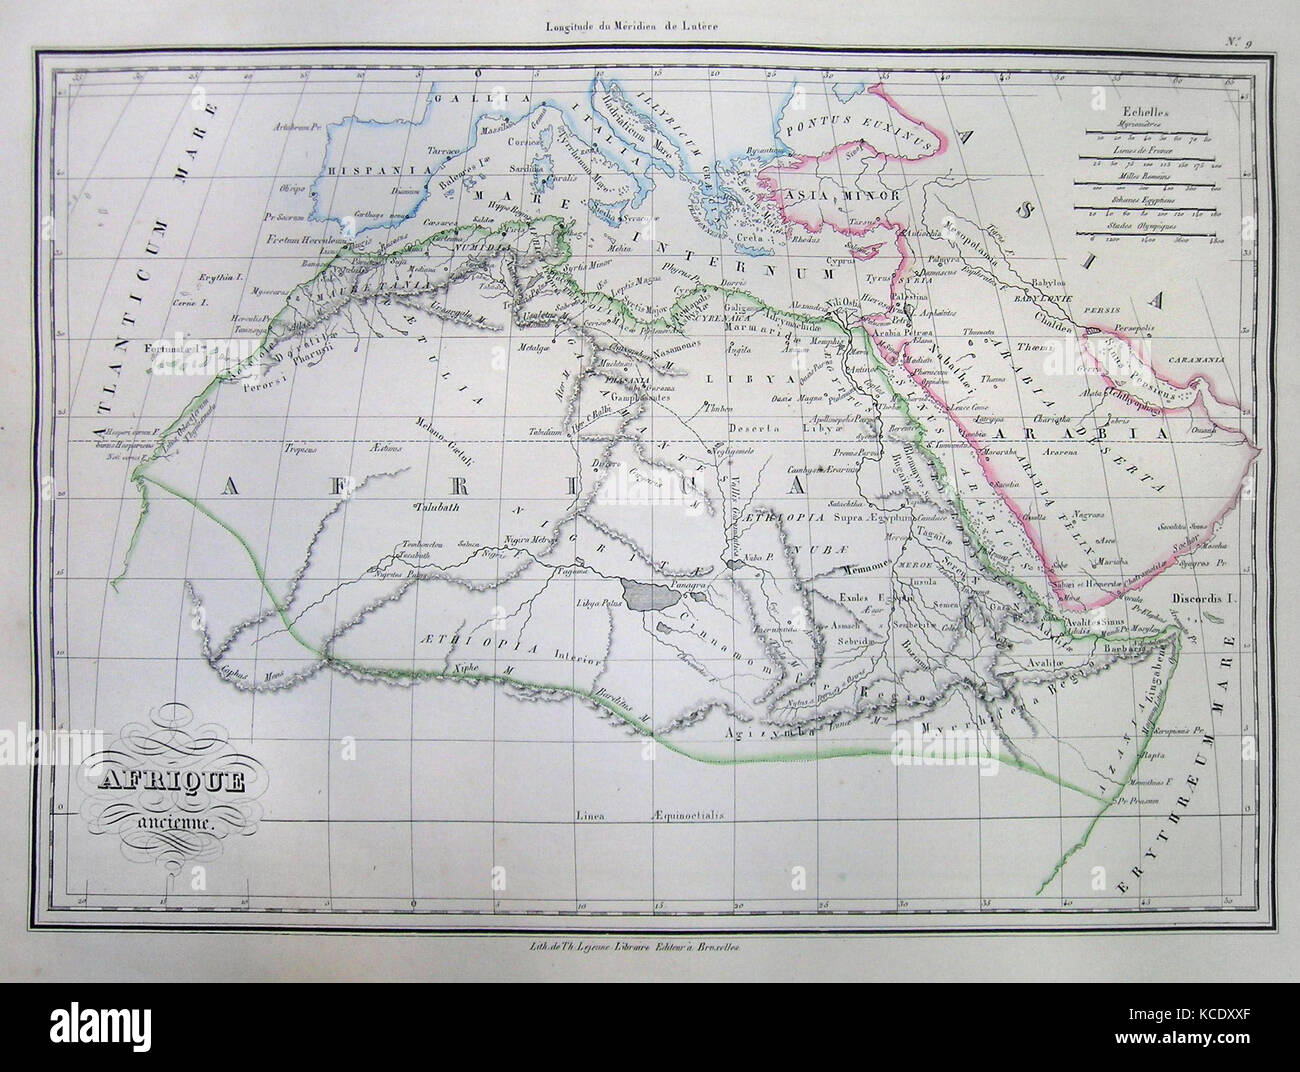 1837, Malte-Brun Map of Africa in Ancient Times - Stock Image